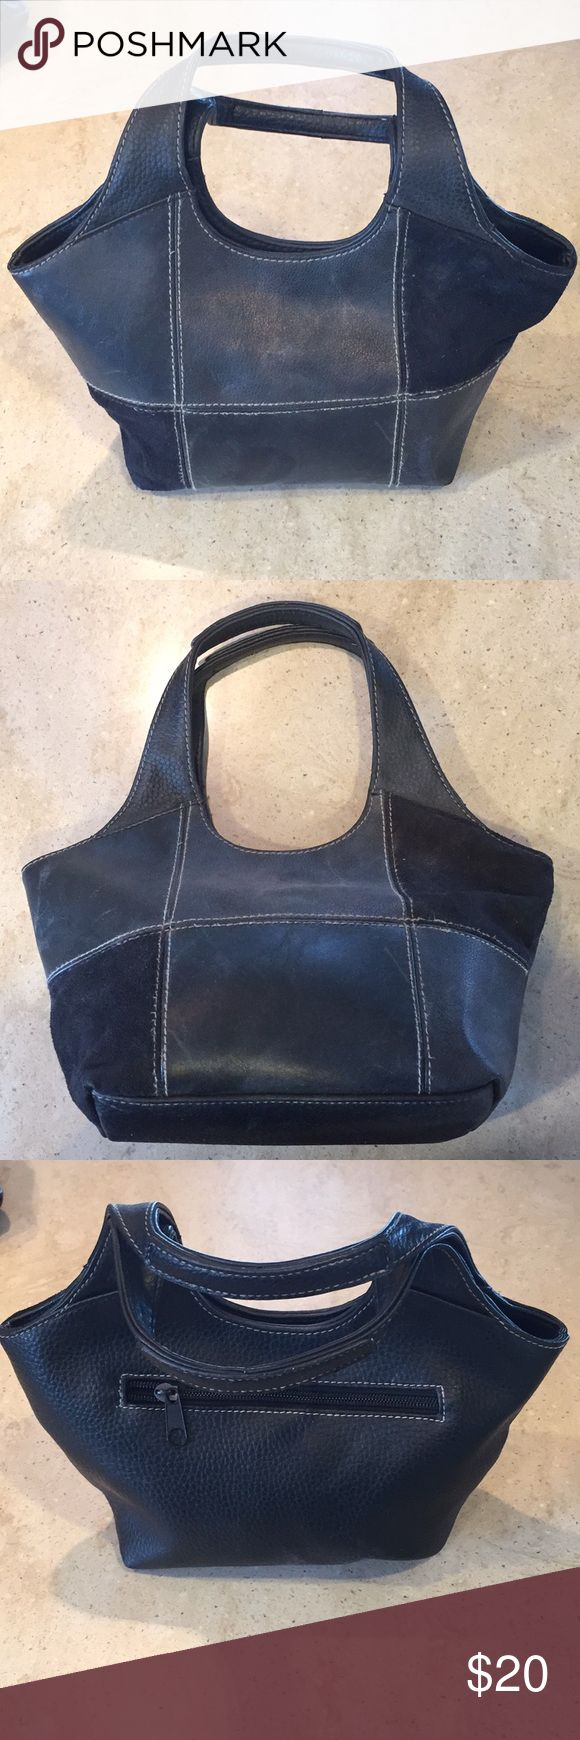 Black leather purse Small black leather purse. Leather patch design on front with zipper pocket on back. Two pouches and a zipper pocket on the inside. Worn. Merona Bags Mini Bags